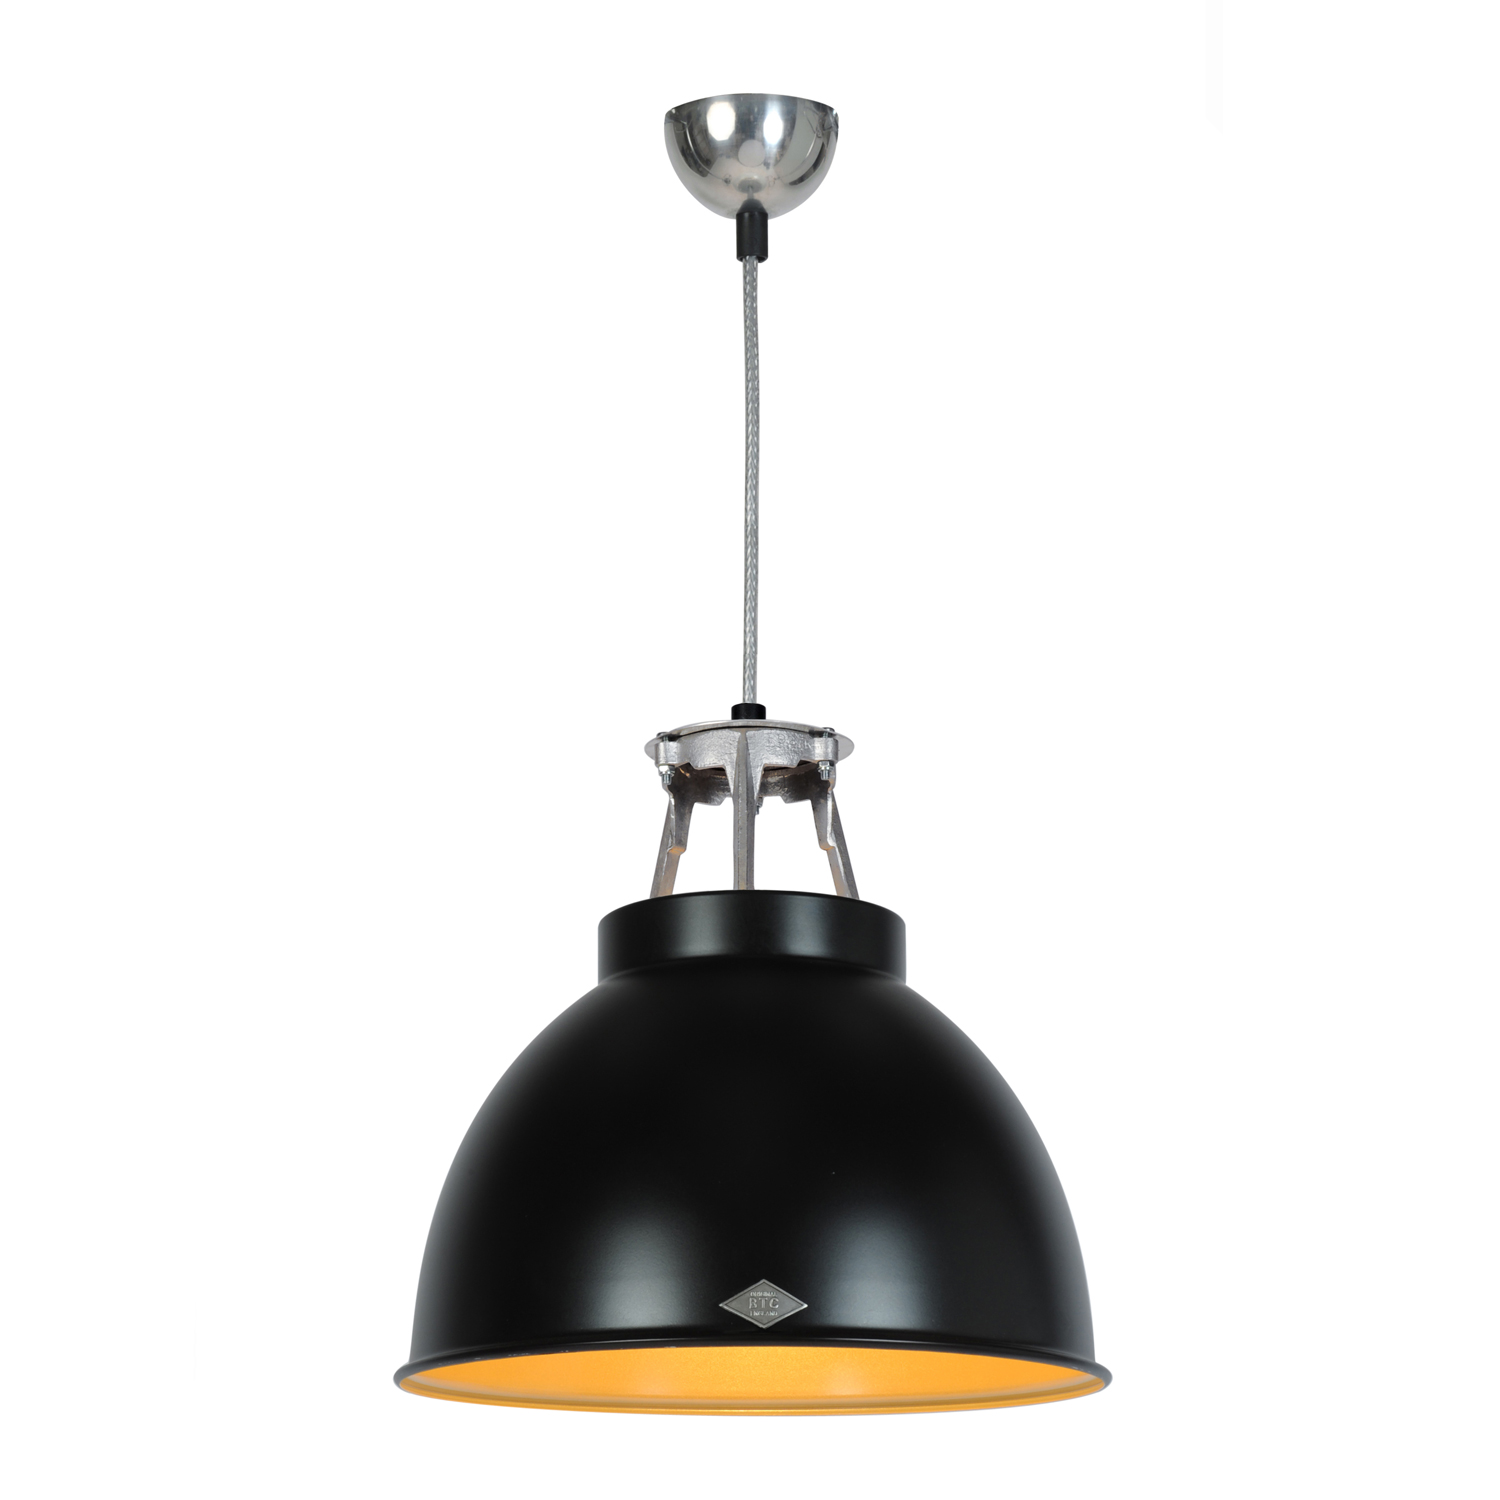 Titan Size 1 Pendant Light, Black/Bronze Interior